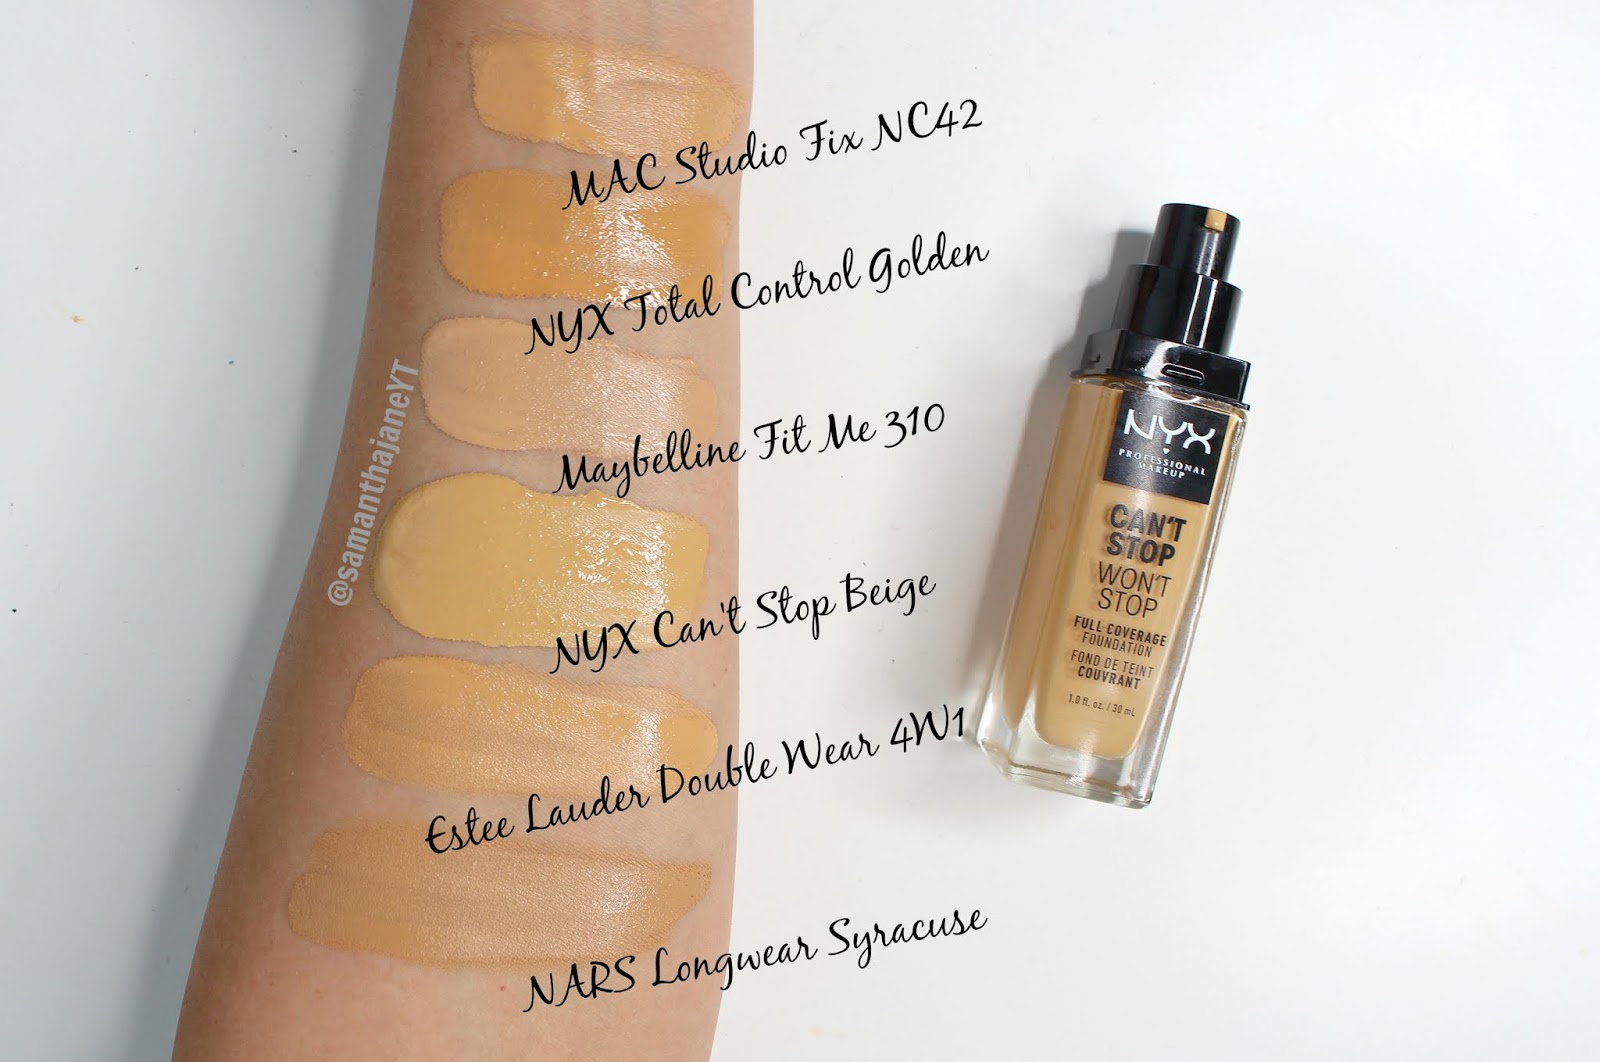 Samantha Jane: NYX Cant Stop Wont Stop Foundation Shade Comparisons